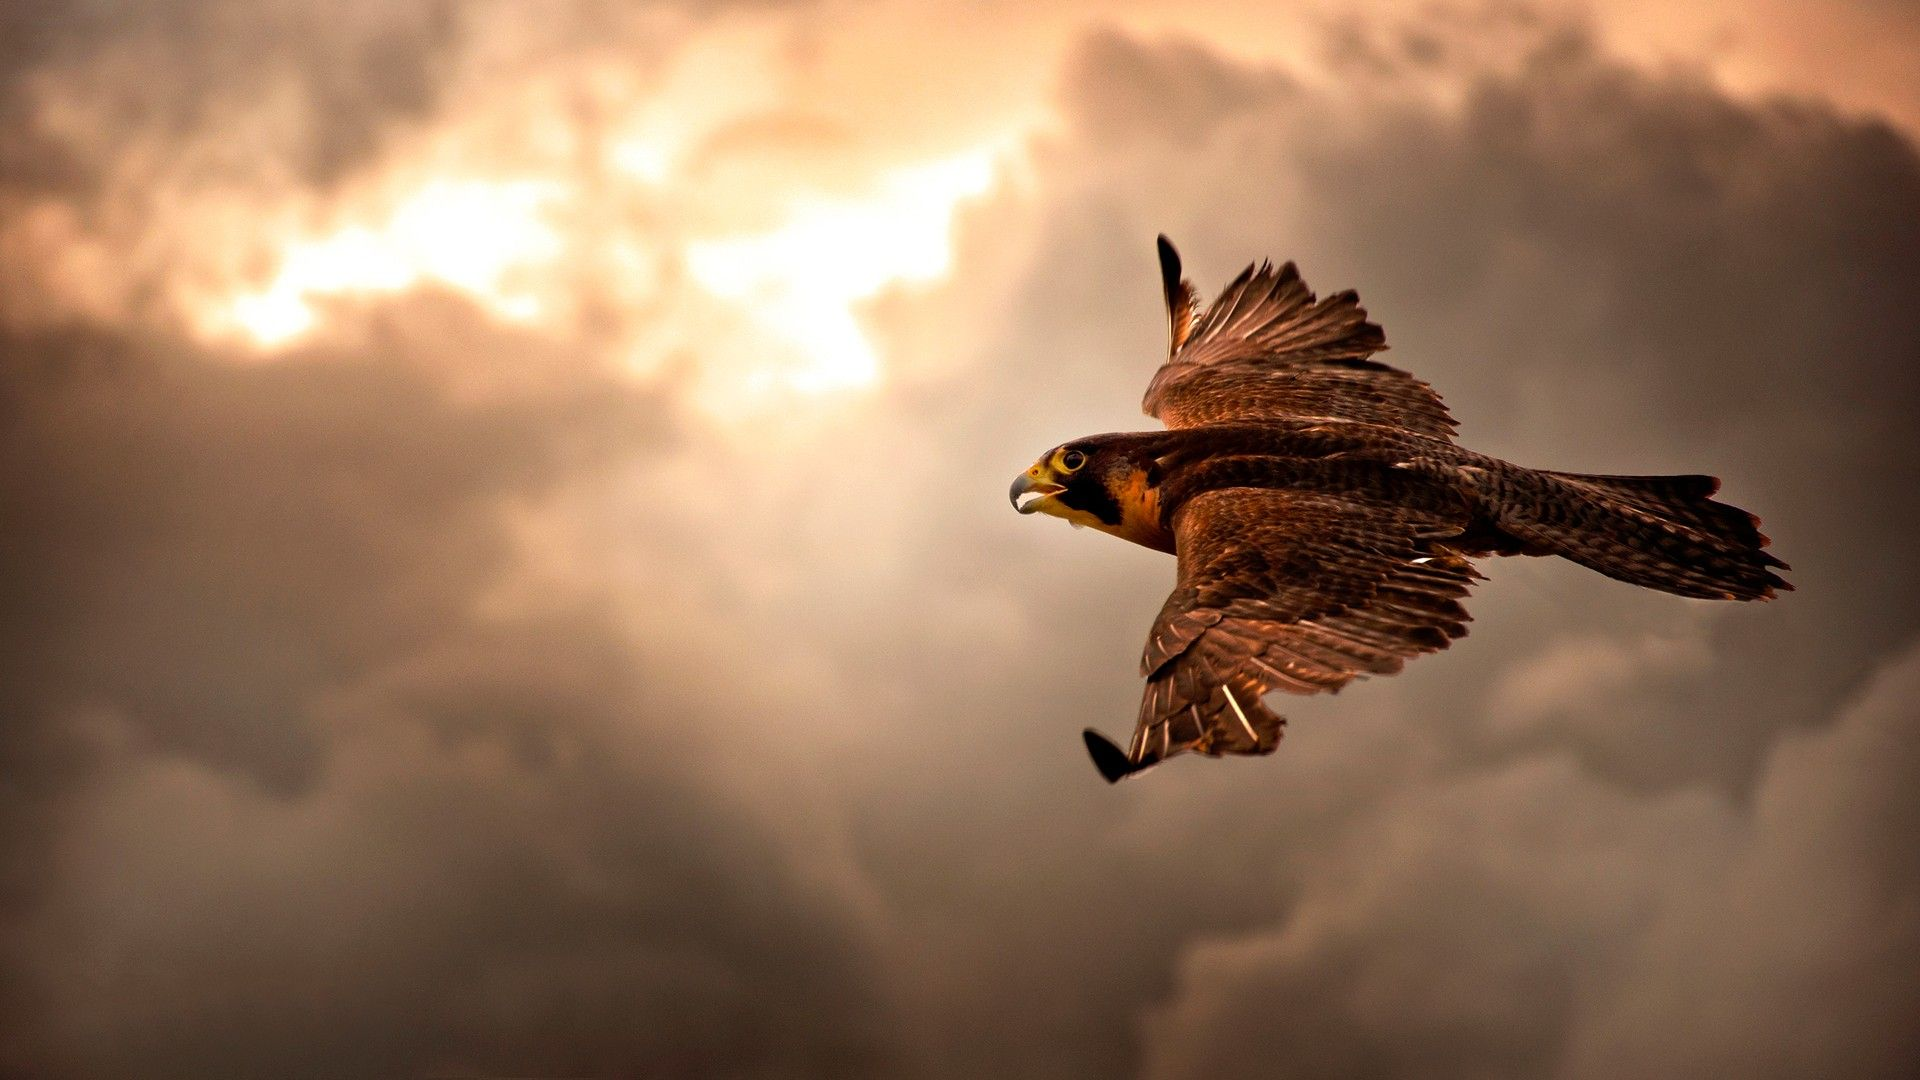 most beautiful eagle pictures